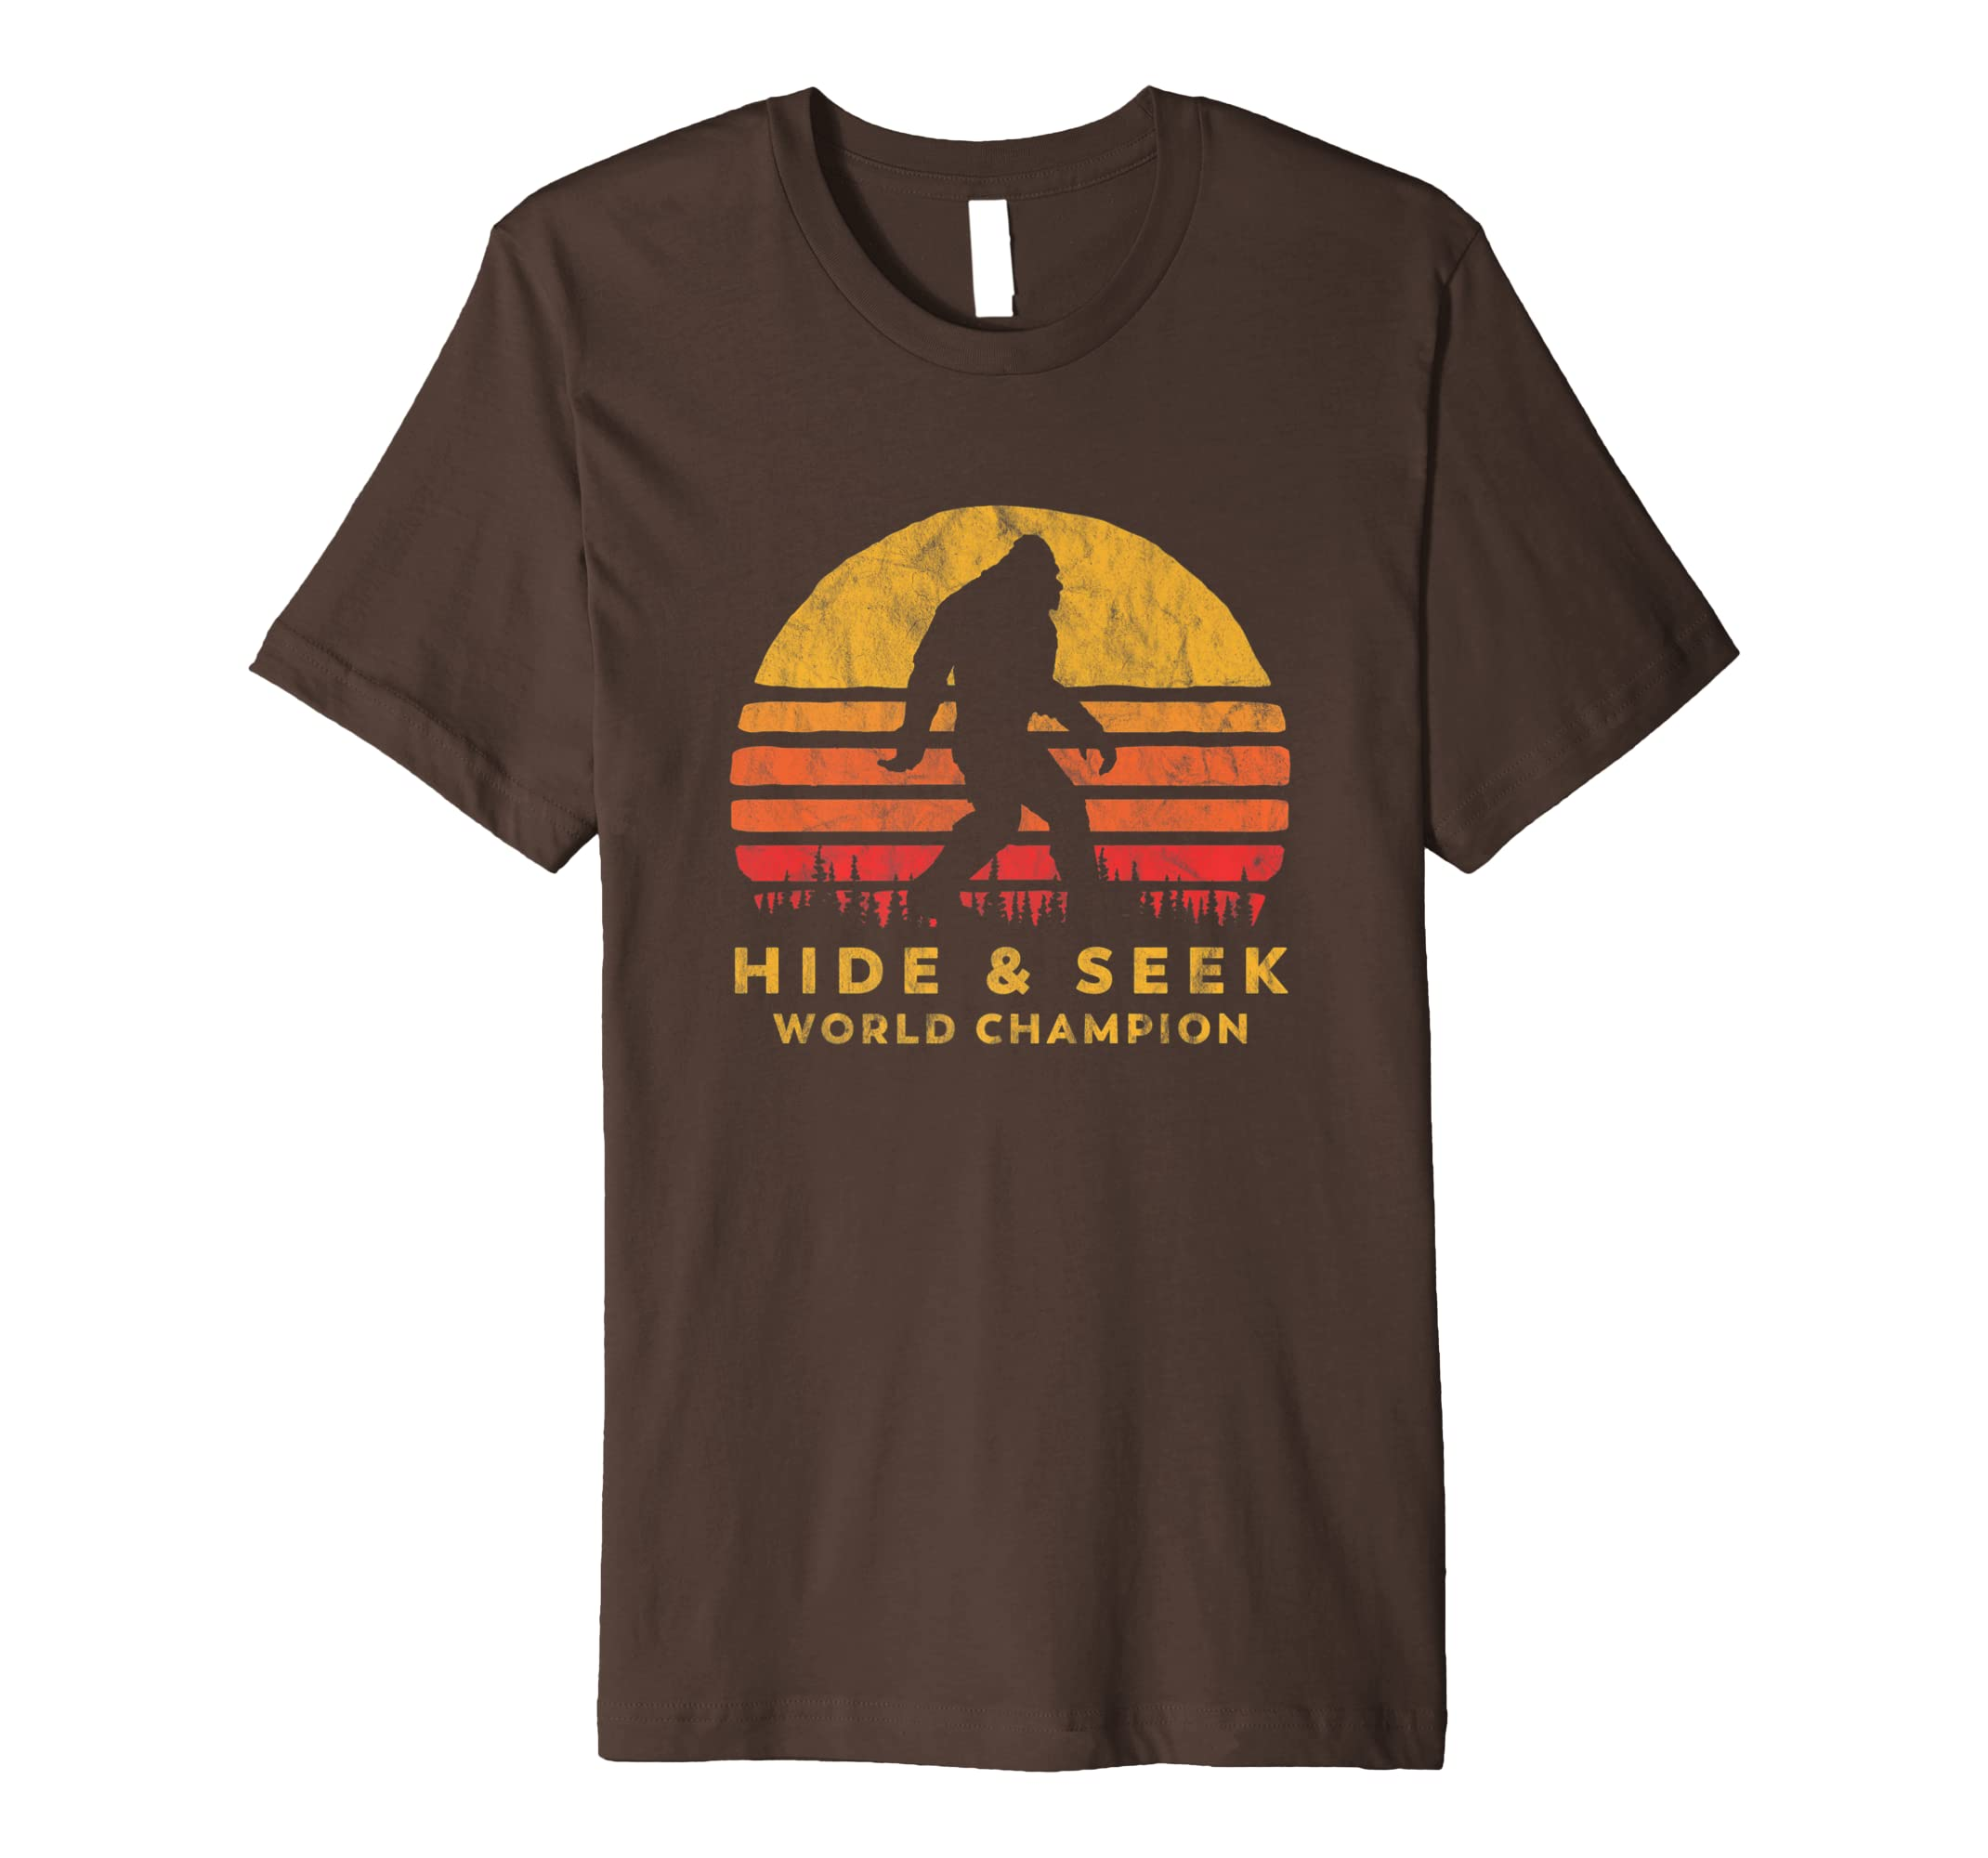 cf98c476 Amazon.com: Retro Hide & Seek World Champ Bigfoot Sun Tee - Believe!:  Clothing